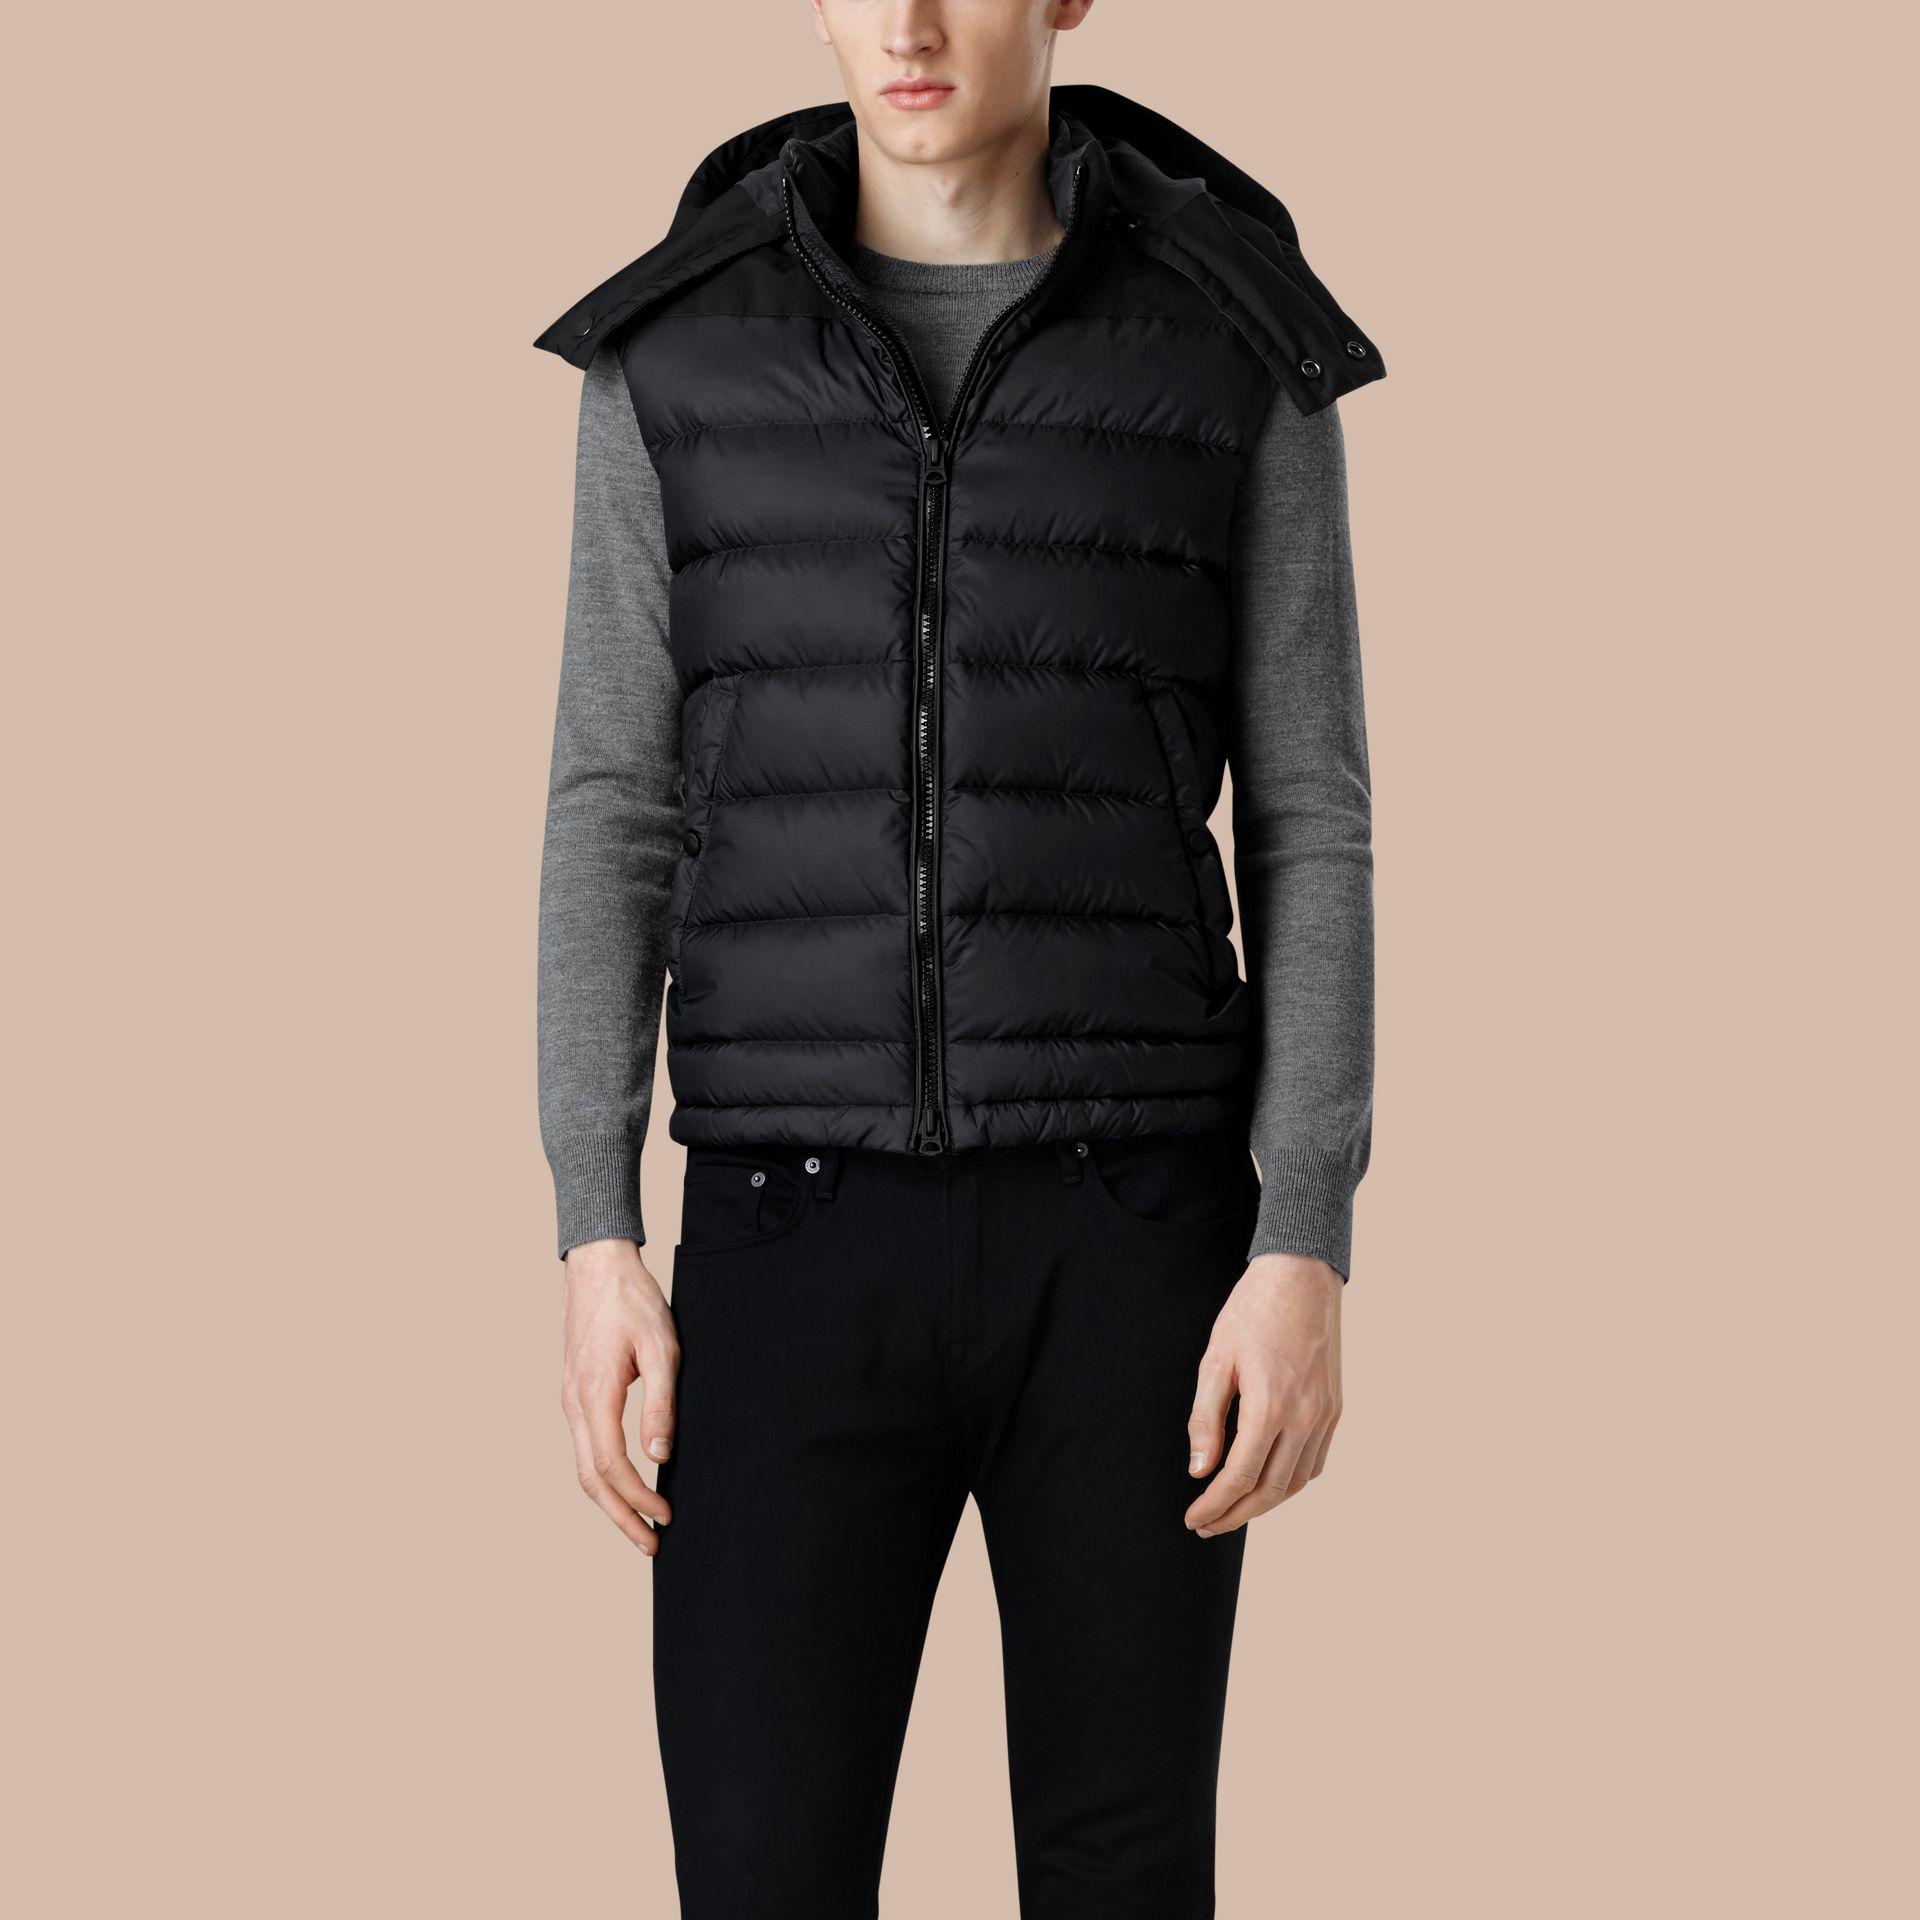 Black Down-filled Technical Gilet with Detachable Hood Black - gallery image 3